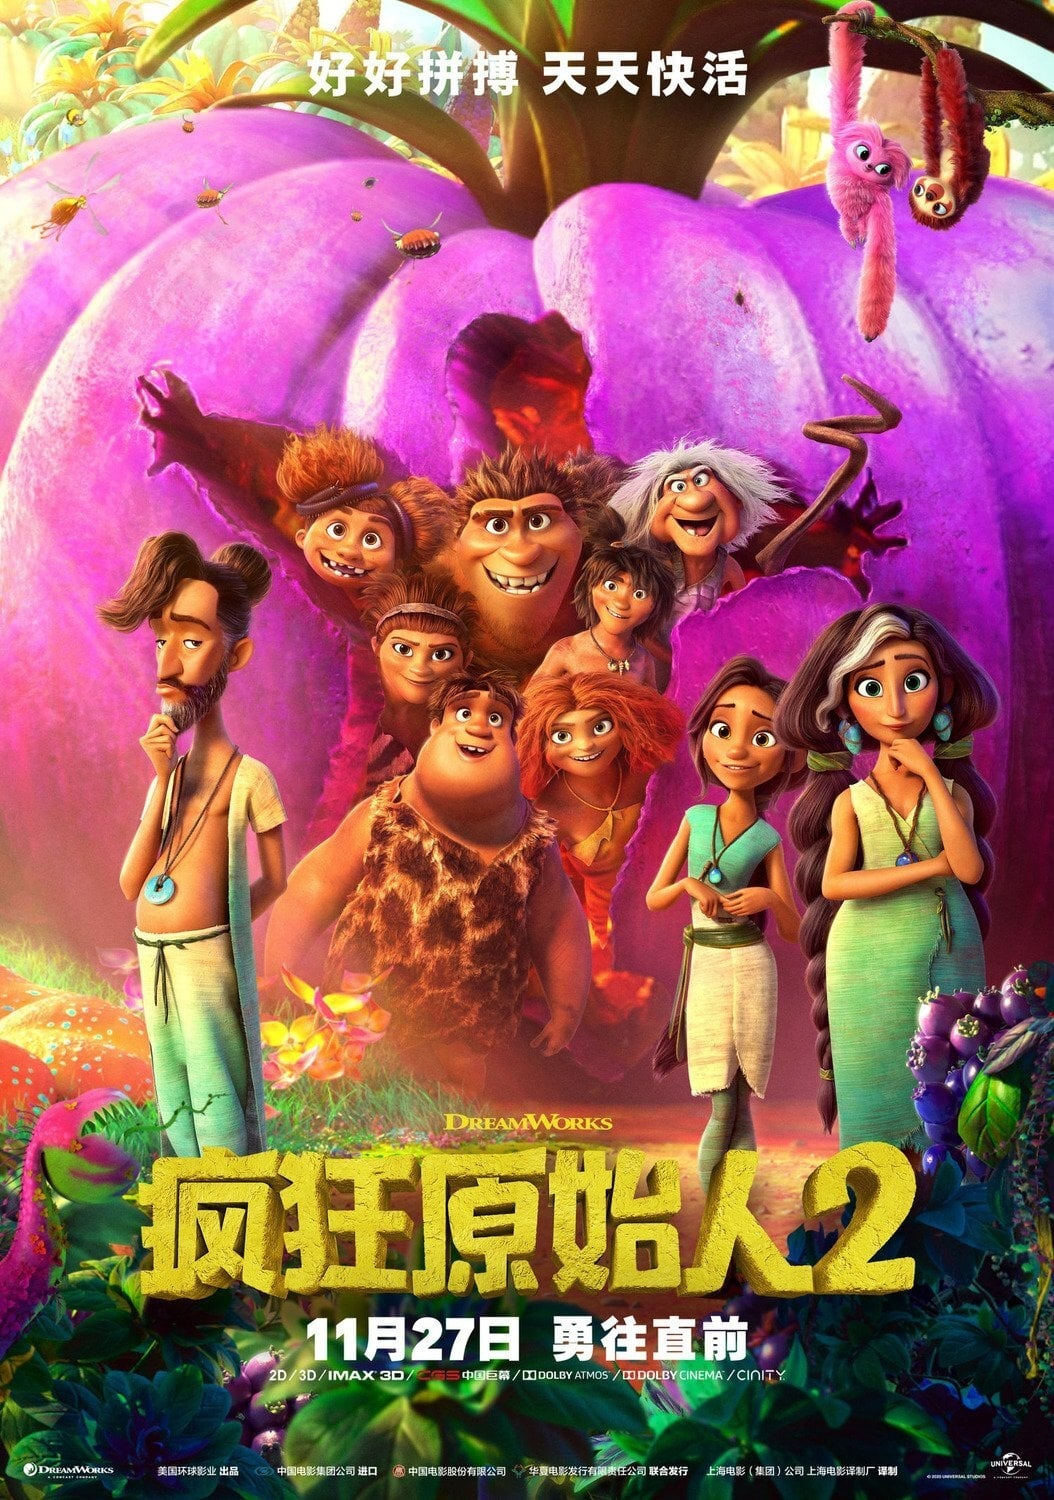 Poster and image movie The Croods: A New Age